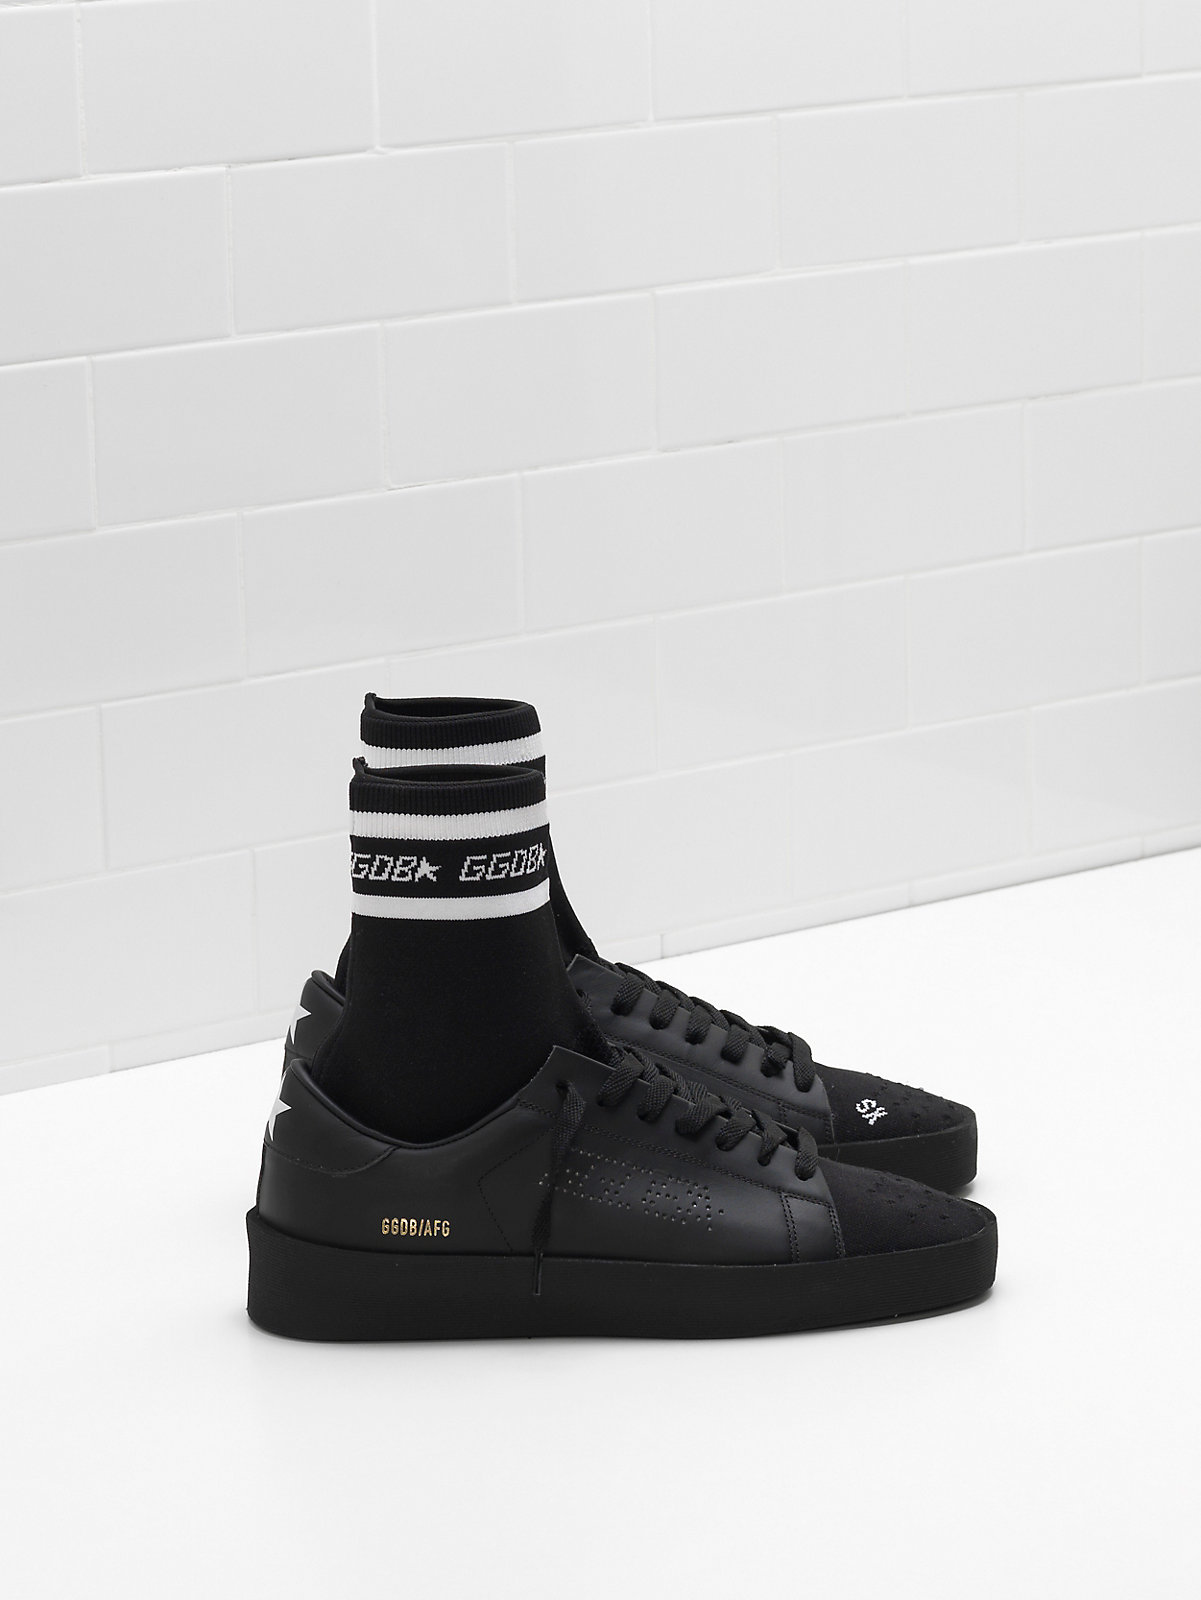 Kolor Magazine Every Golden Goose Sneaker Styles Without The Dirty Look High End.jpg